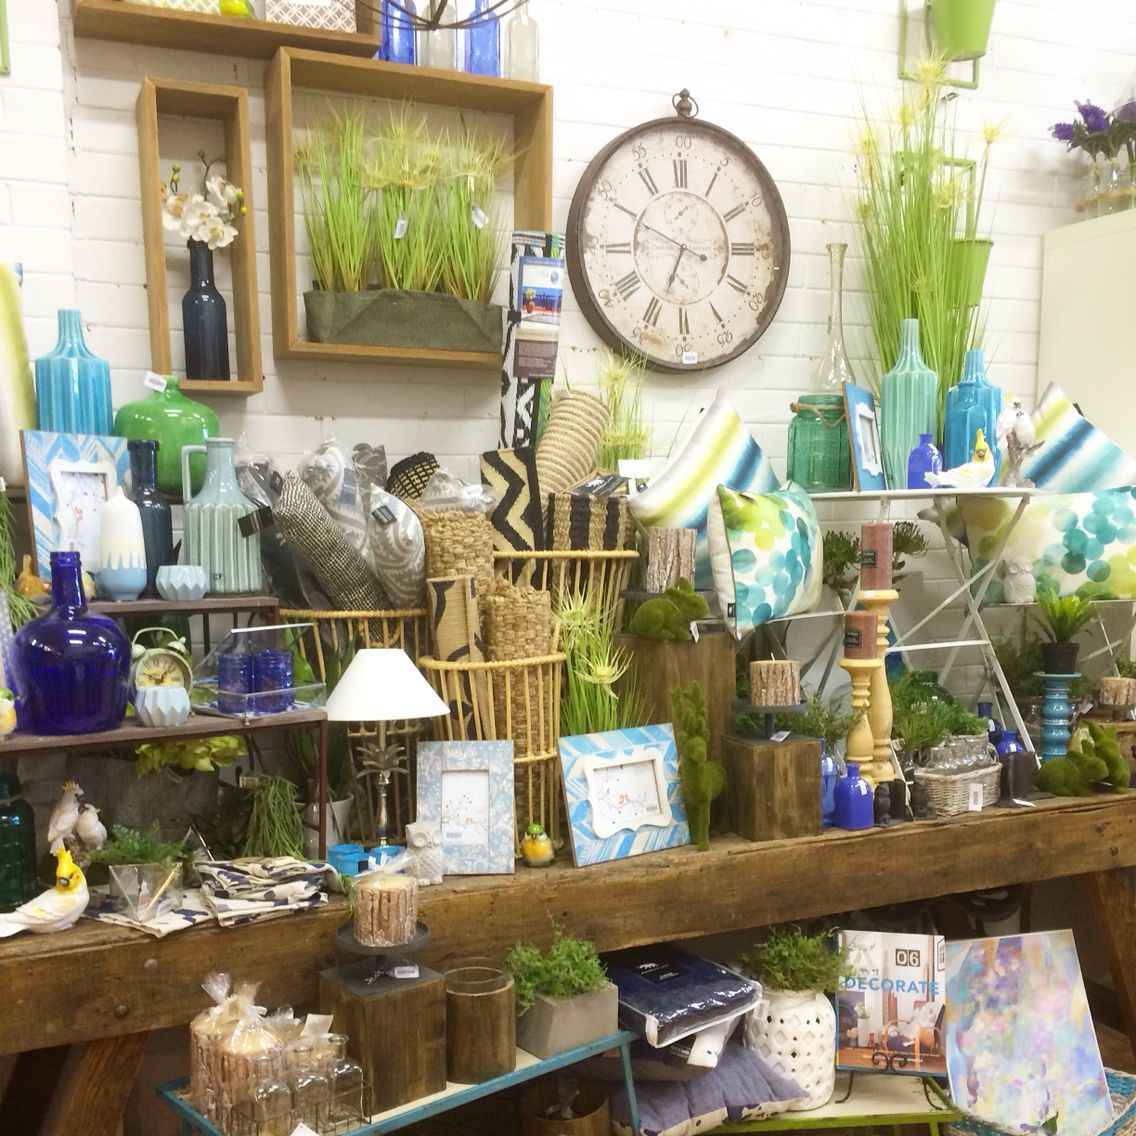 blues lime green and navy shop display visual merchandising our home decor shop - Home Decor Melbourne